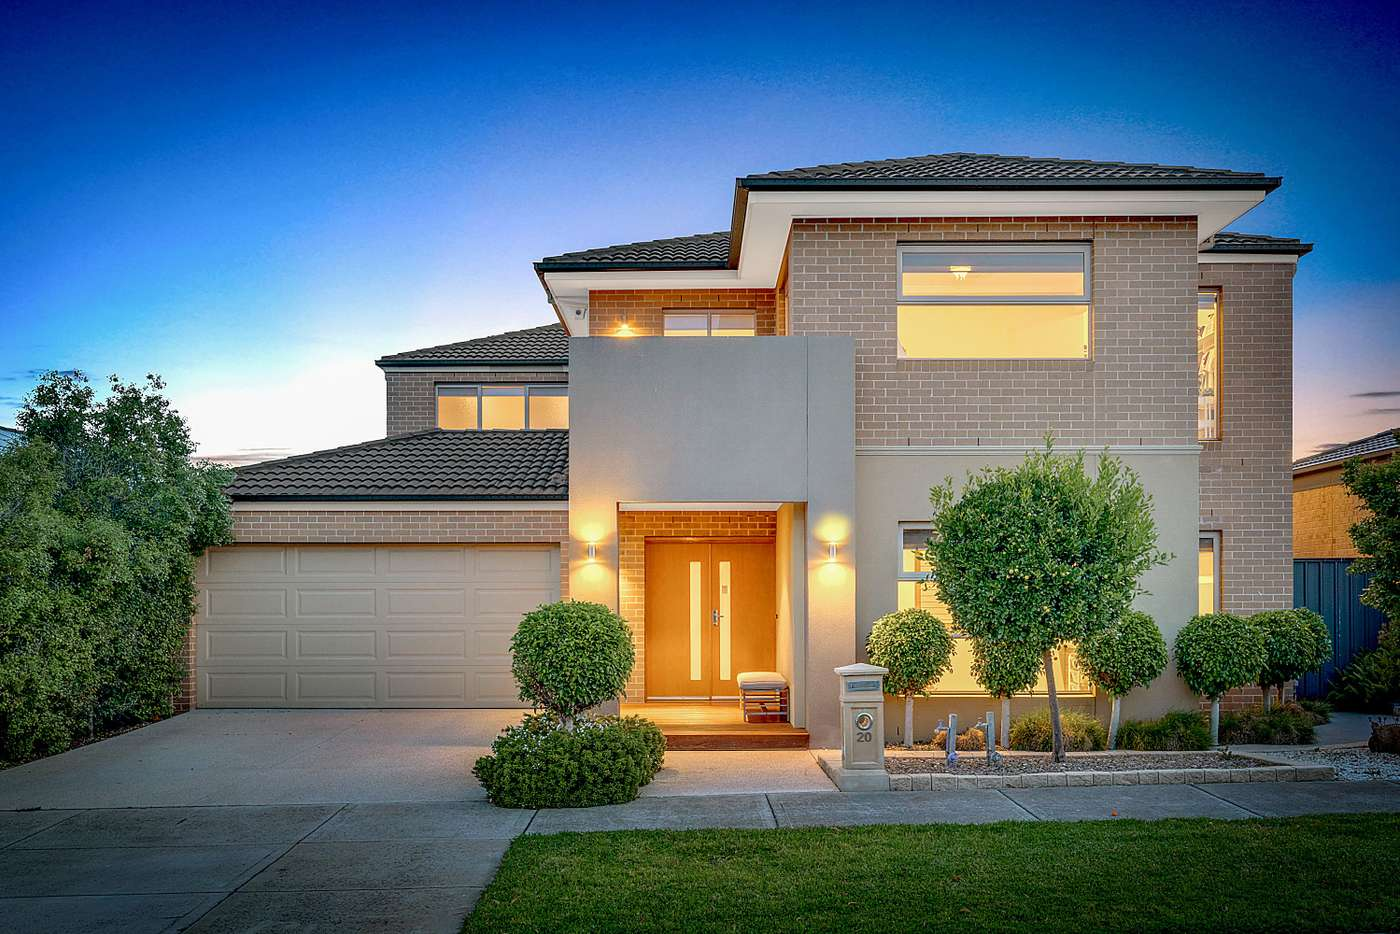 Main view of Homely house listing, 20 Penfold Street, Craigieburn VIC 3064